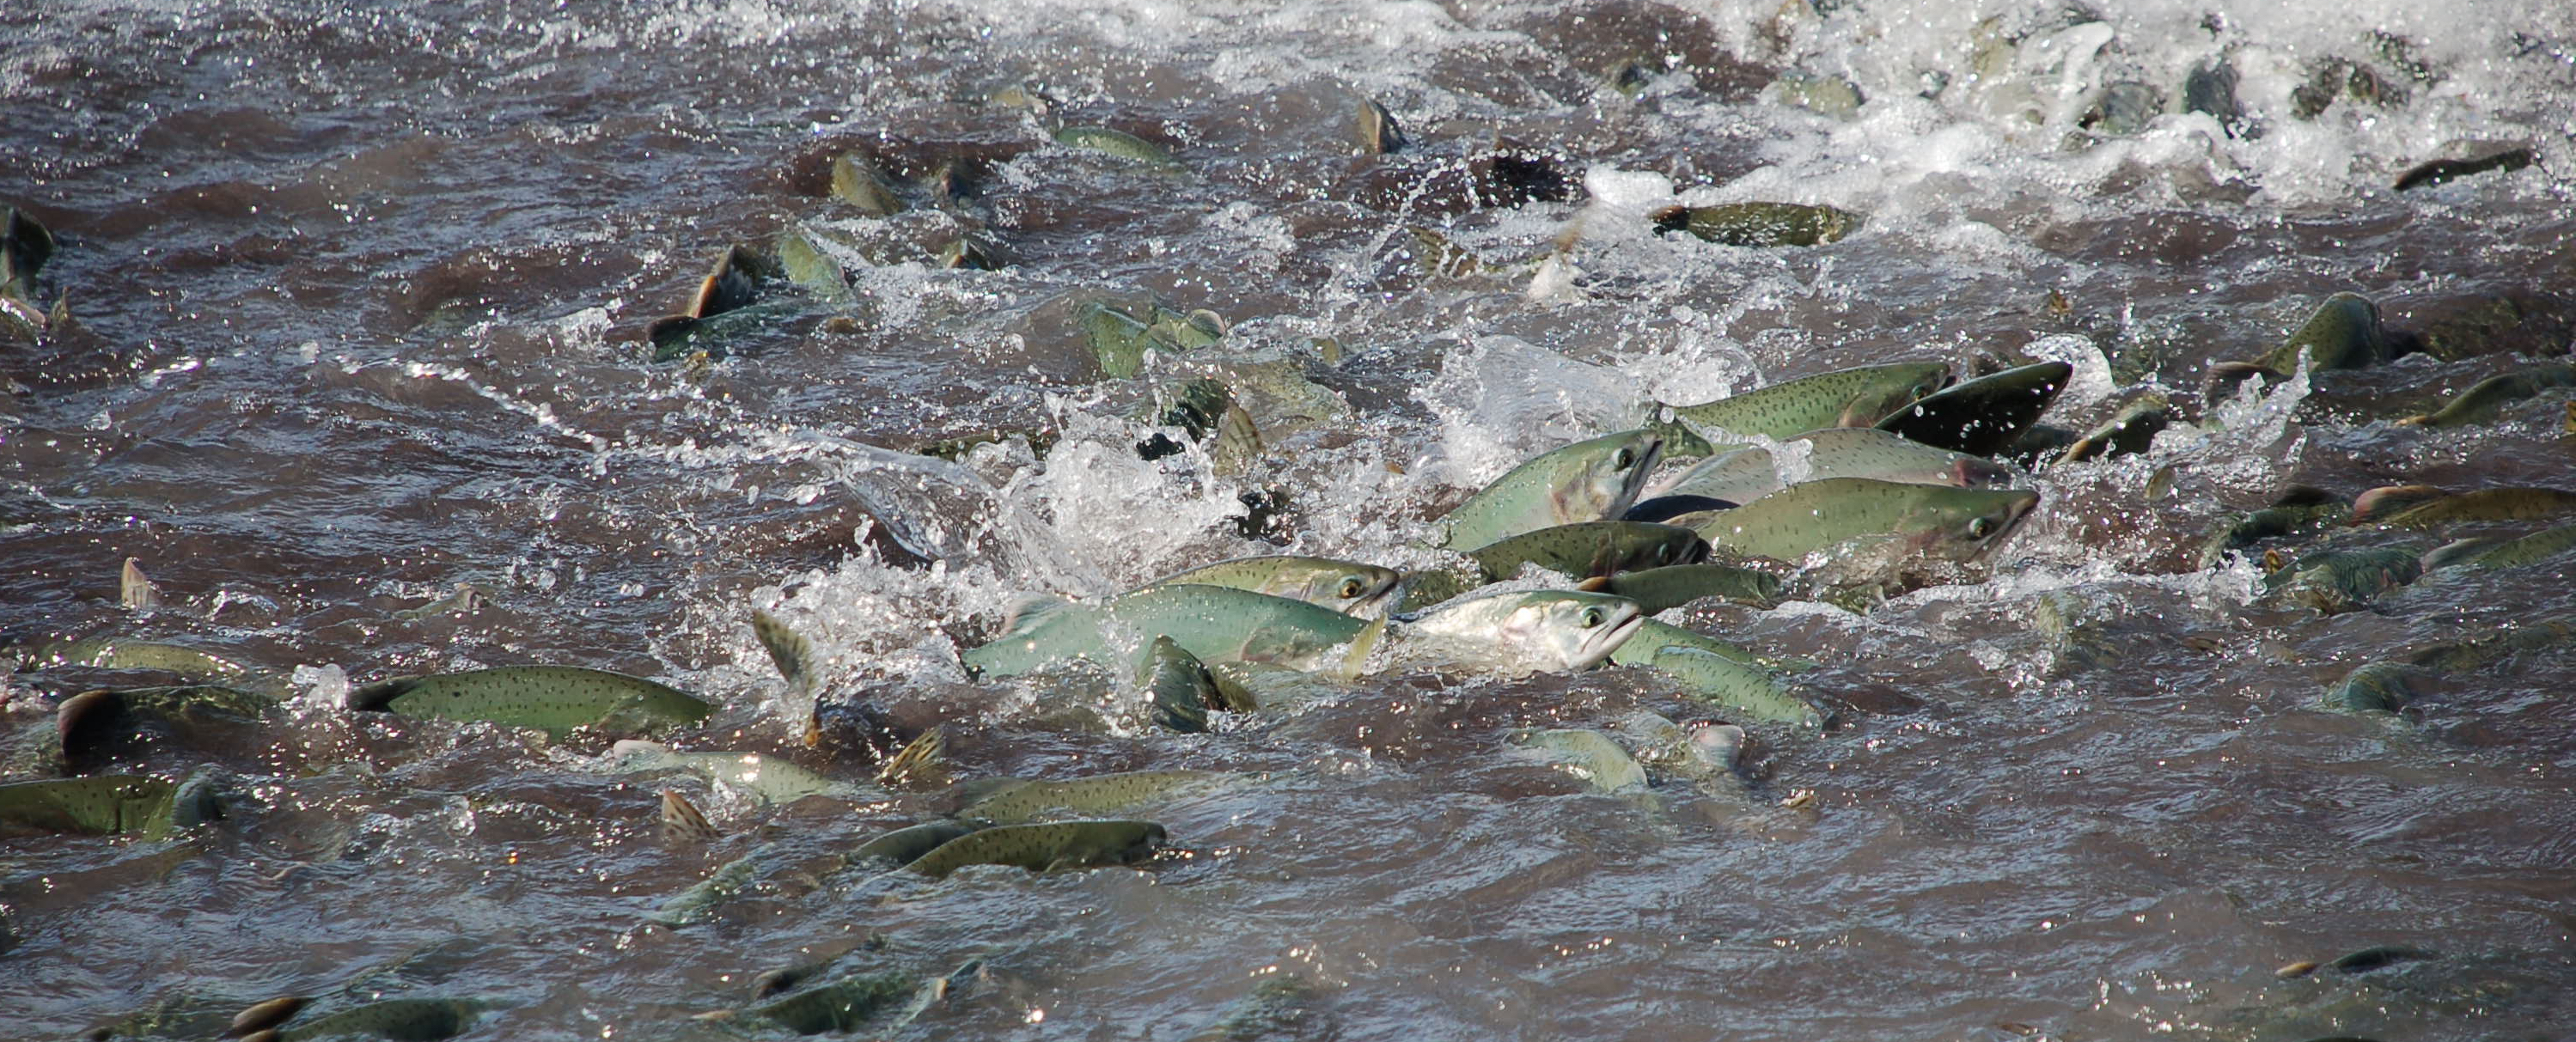 Puyallup Tribe: Will a wall of warm water stop salmon?